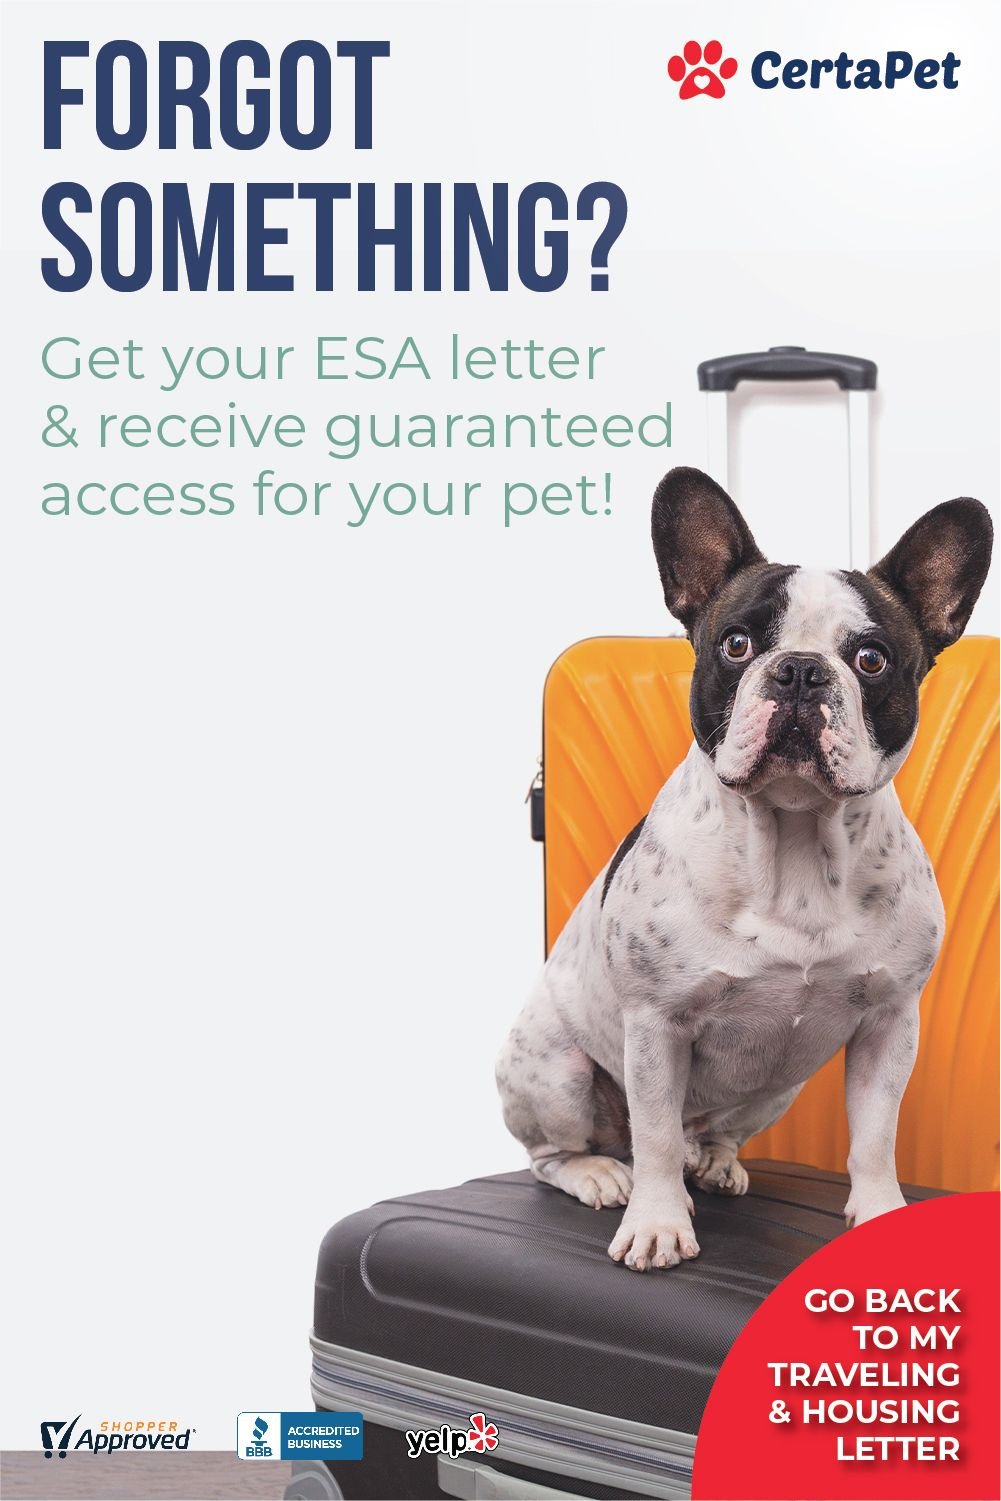 Your Housing & Travel Letter Is Waiting! Certapet